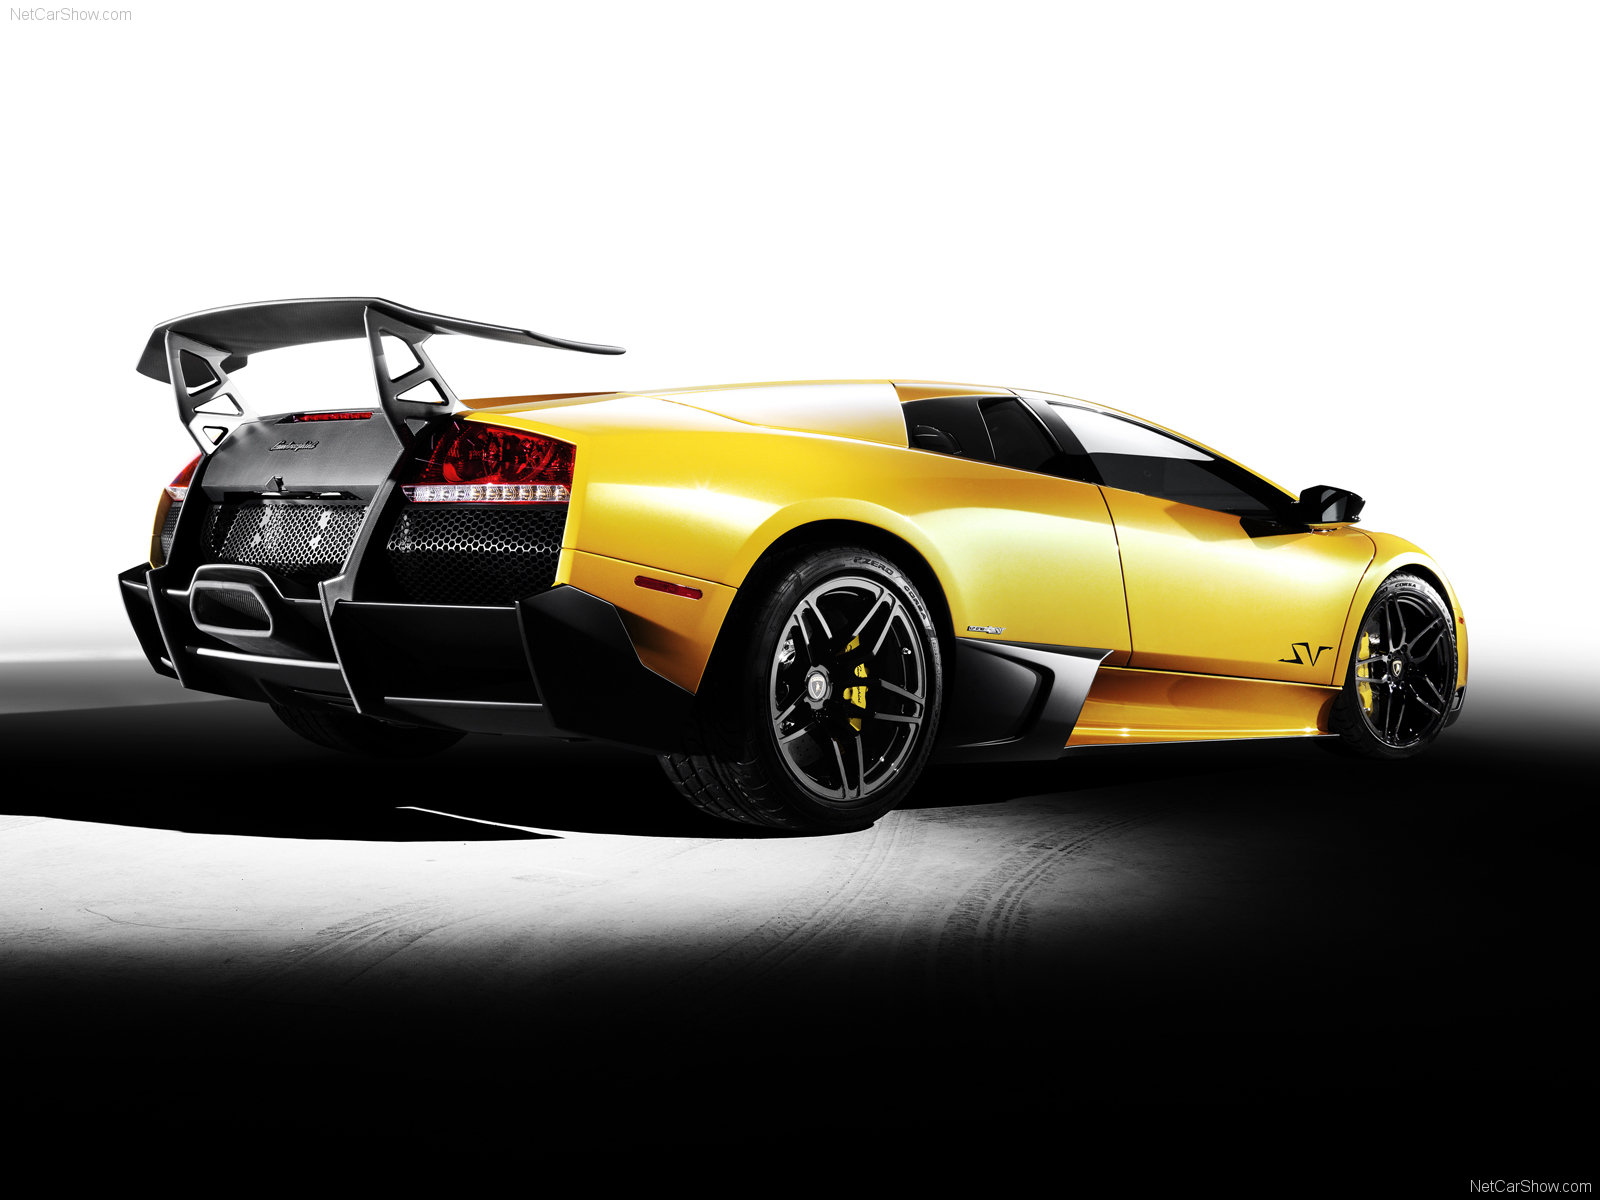 Lamborghini Wallpaper HD: Lamborghini Murcielago Wallpaper